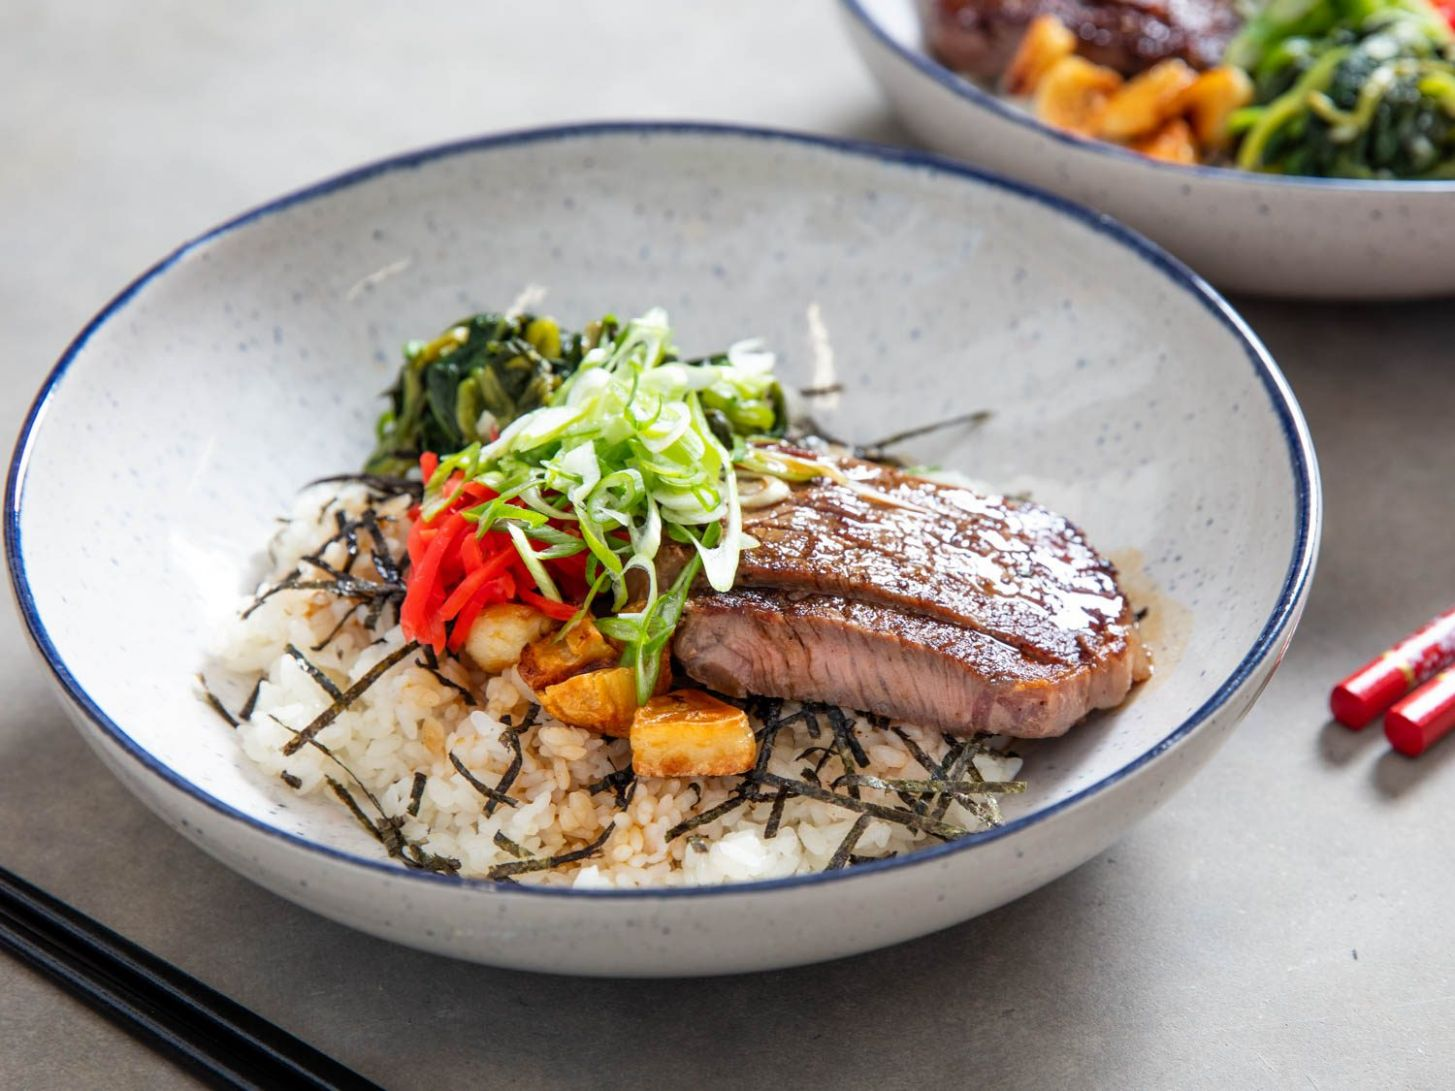 Beefsteak Donburi (Japanese Rice Bowl) With Spinach Recipe